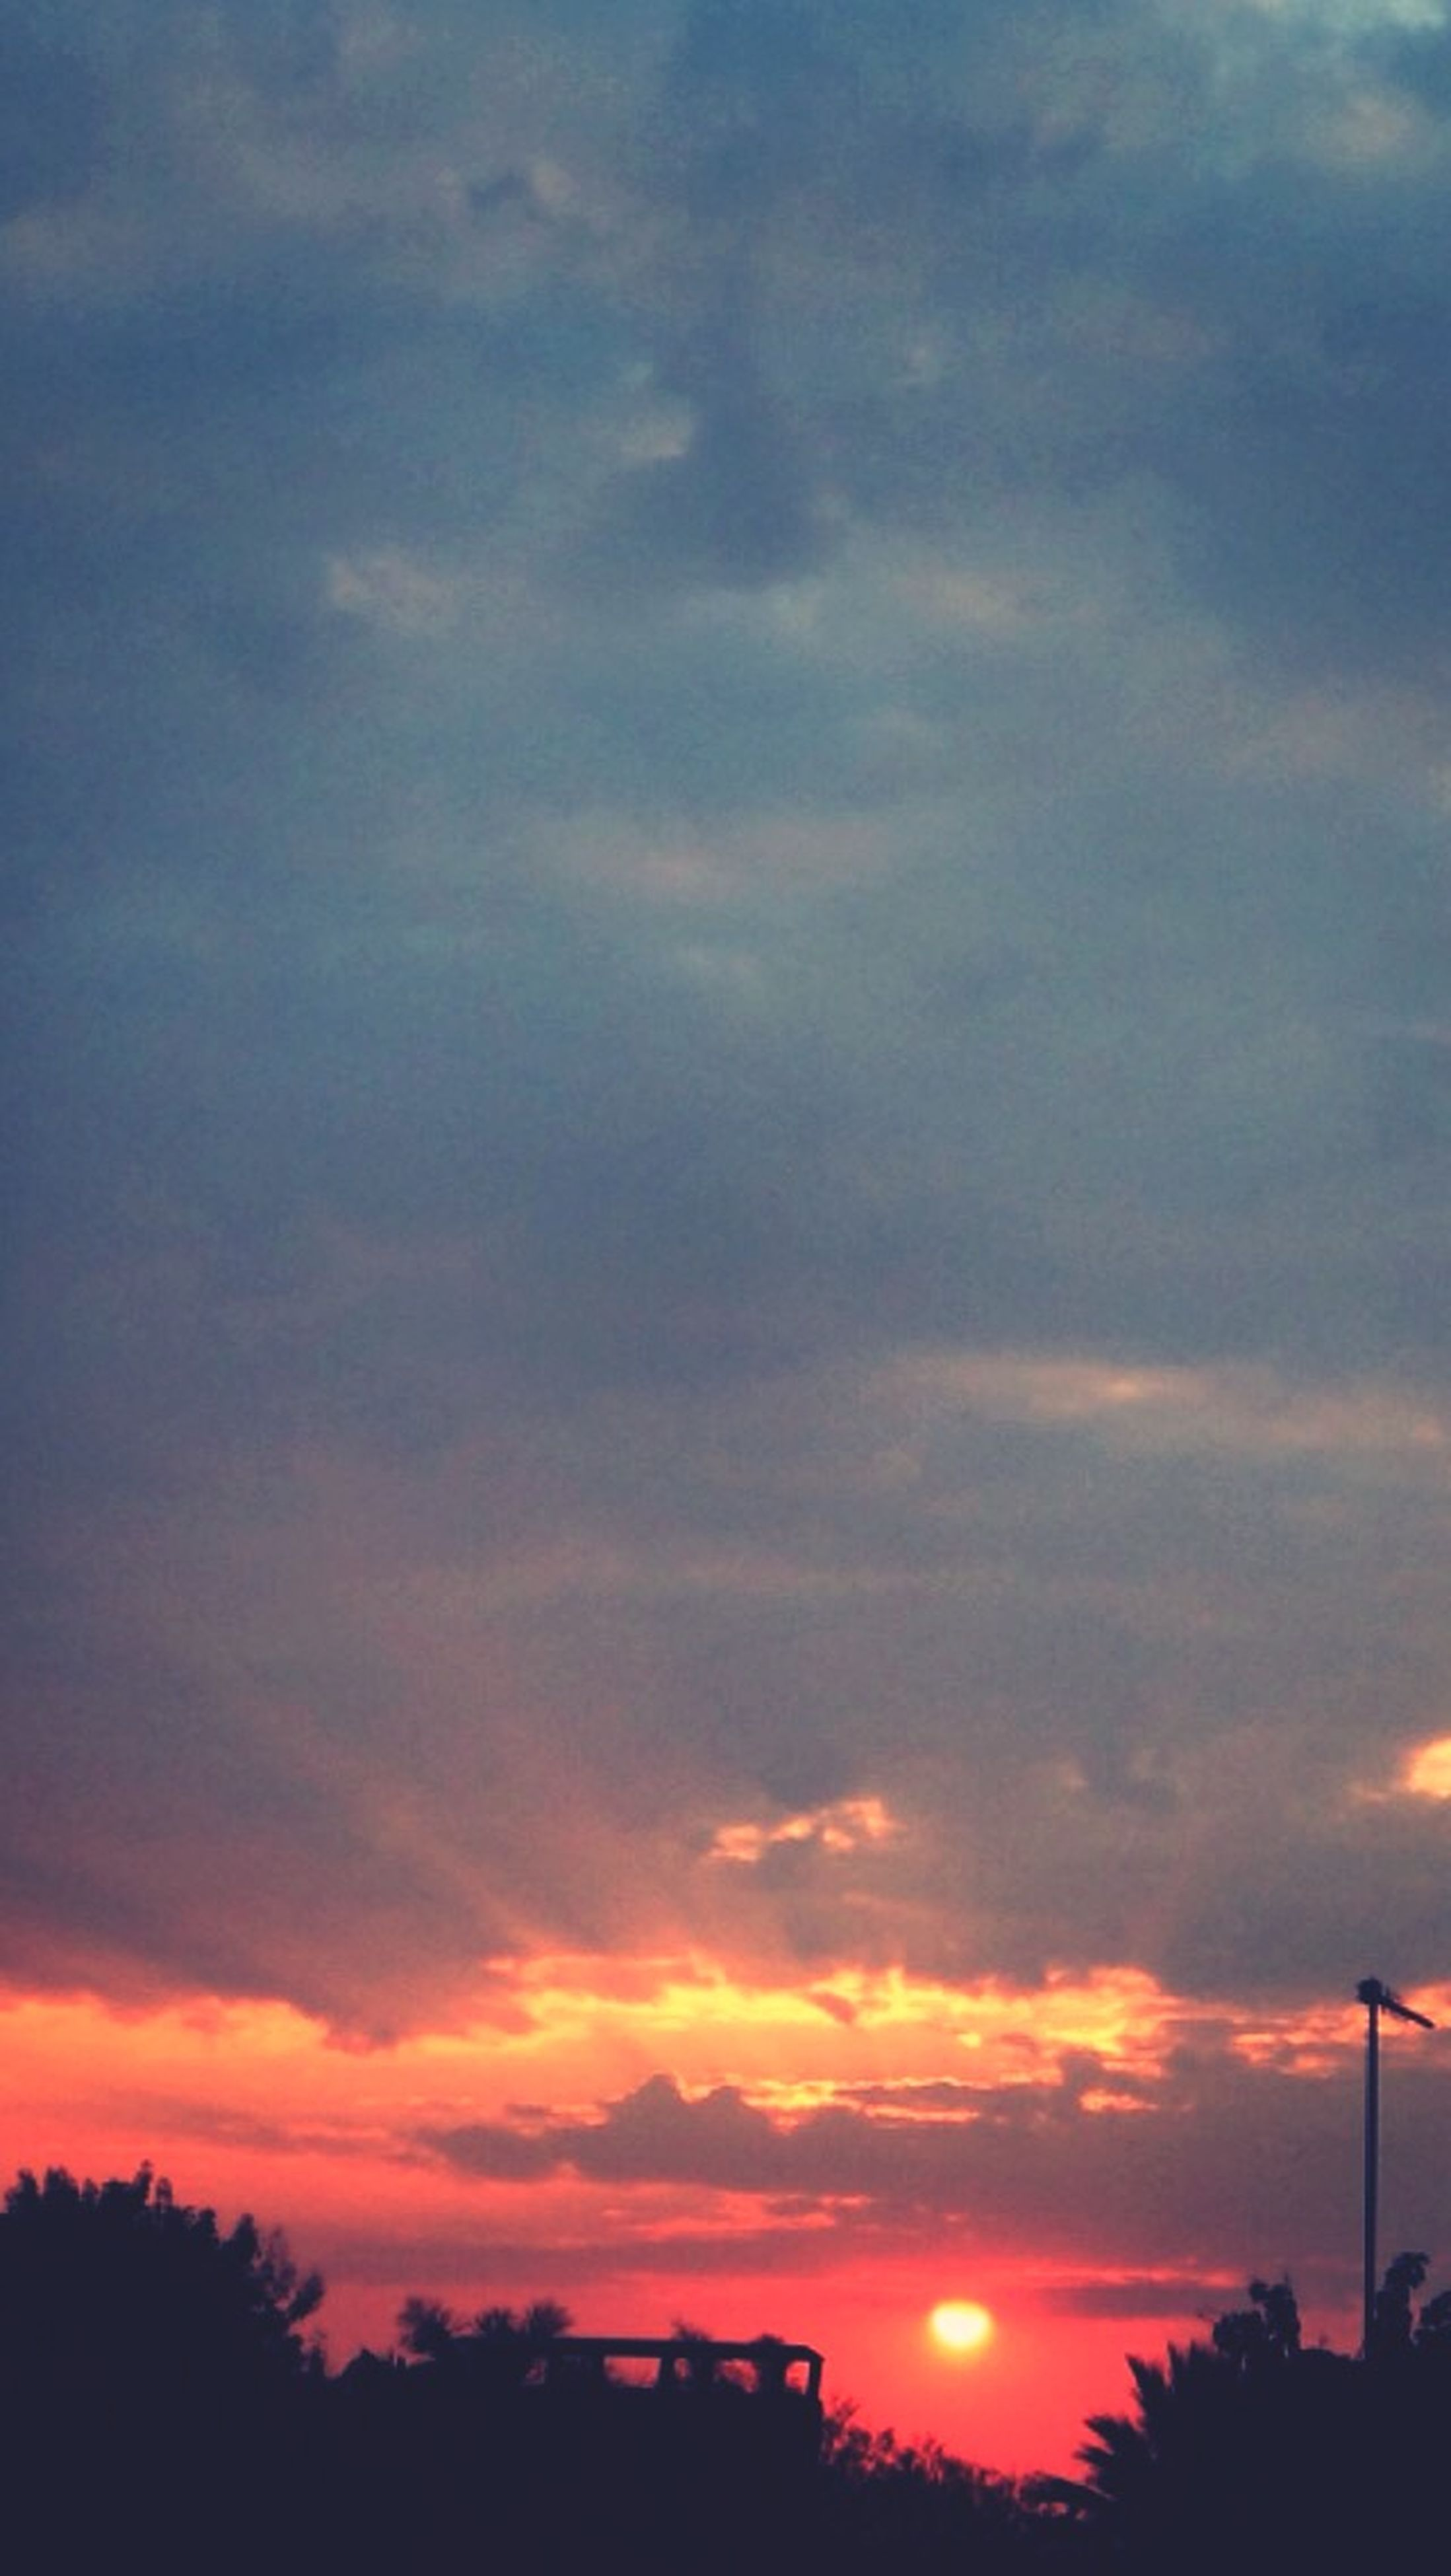 sunset, silhouette, sky, beauty in nature, scenics, orange color, tranquility, tranquil scene, cloud - sky, low angle view, tree, nature, idyllic, dramatic sky, cloud, cloudy, moody sky, outdoors, no people, majestic